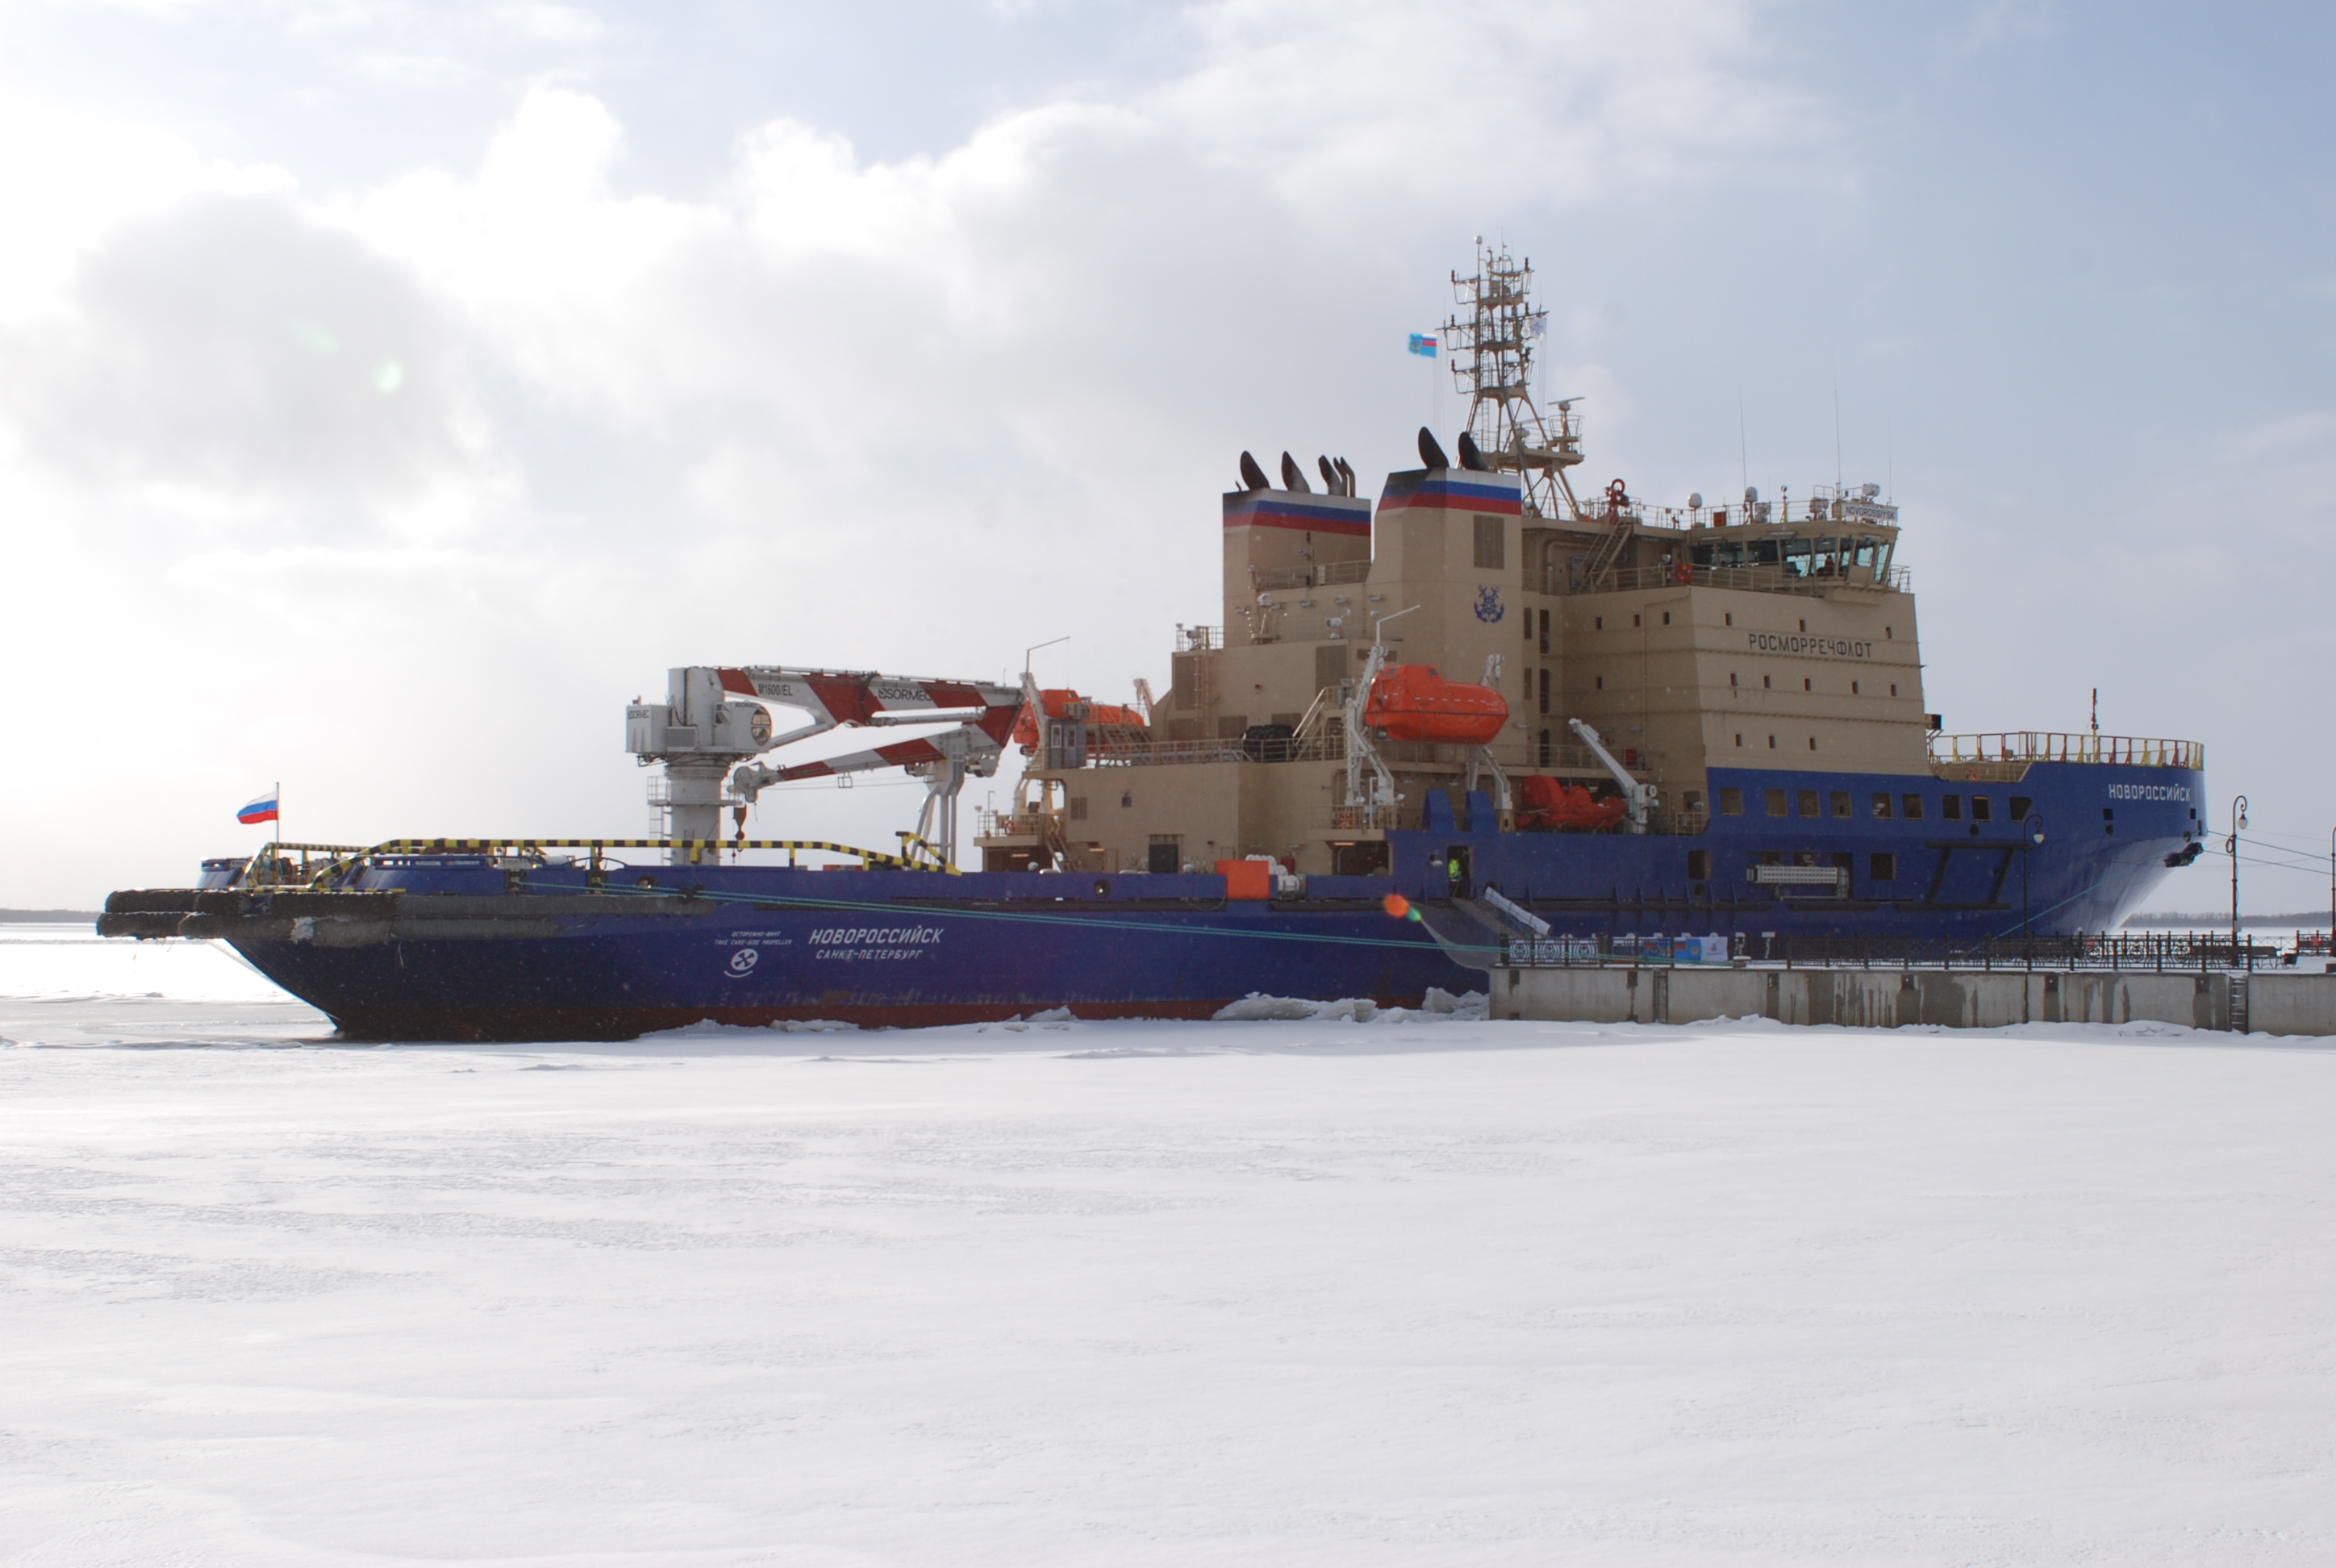 New Russian Icebreaker Finished Winter Season 20162017